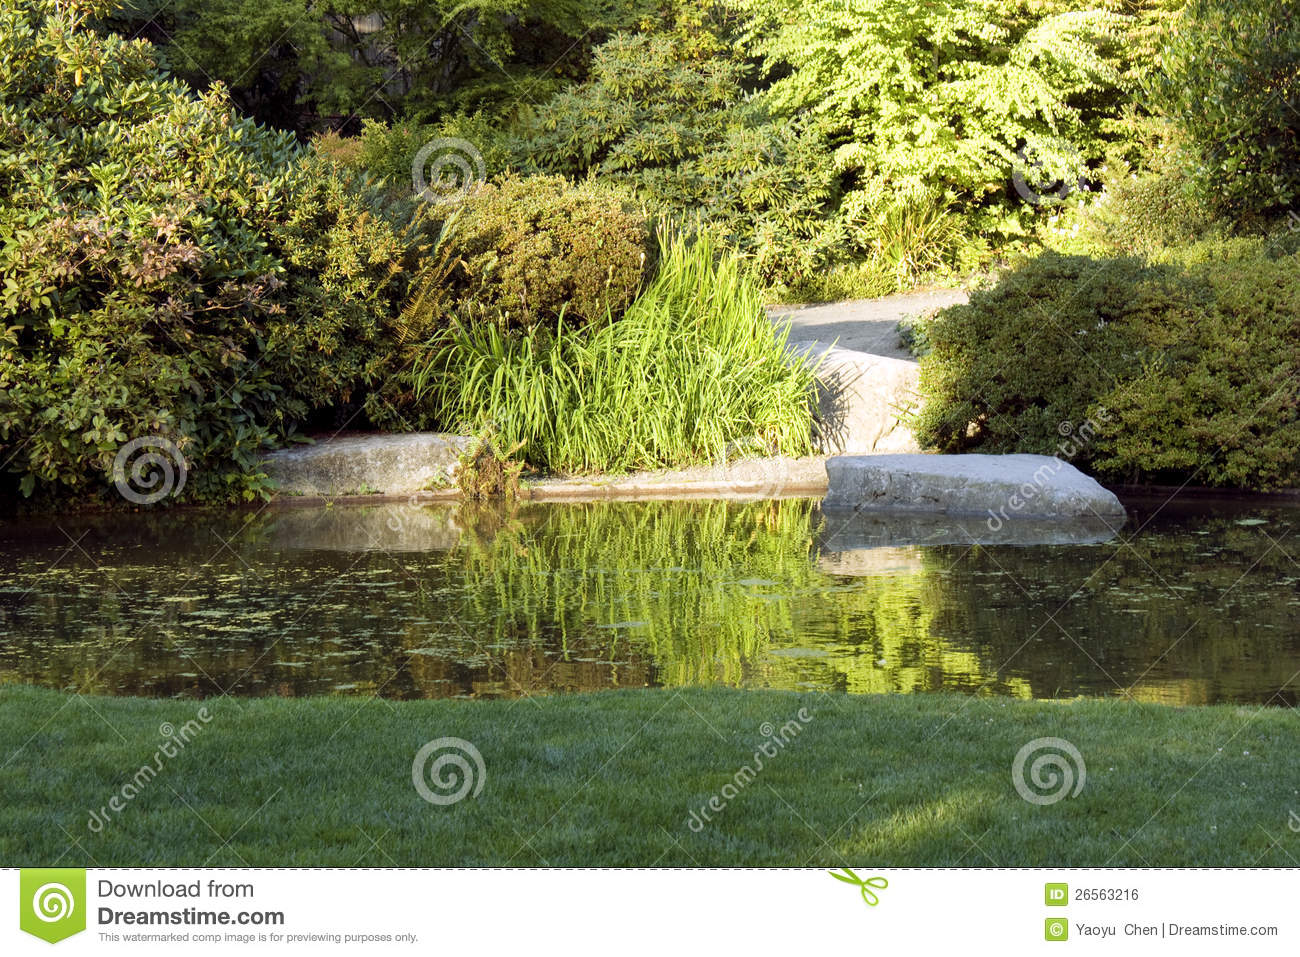 Garden with nice lawn and pond stock photo image of for Garden pond design software free download